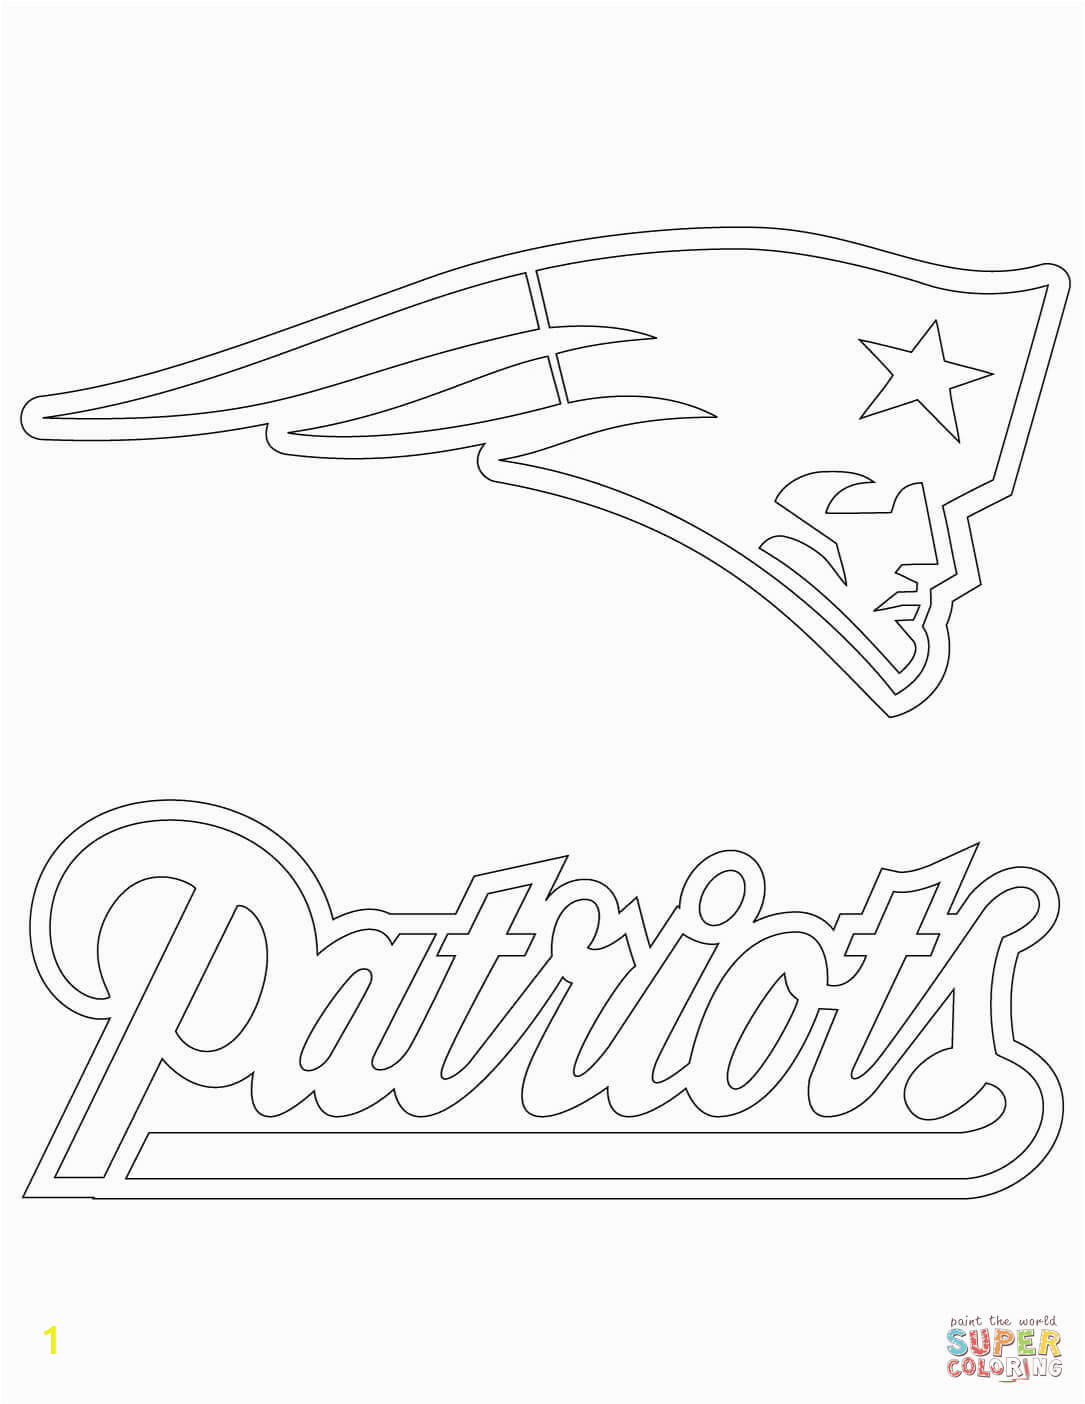 paris coloring pages new england patriots logo page free printable archive with tag water handistory color